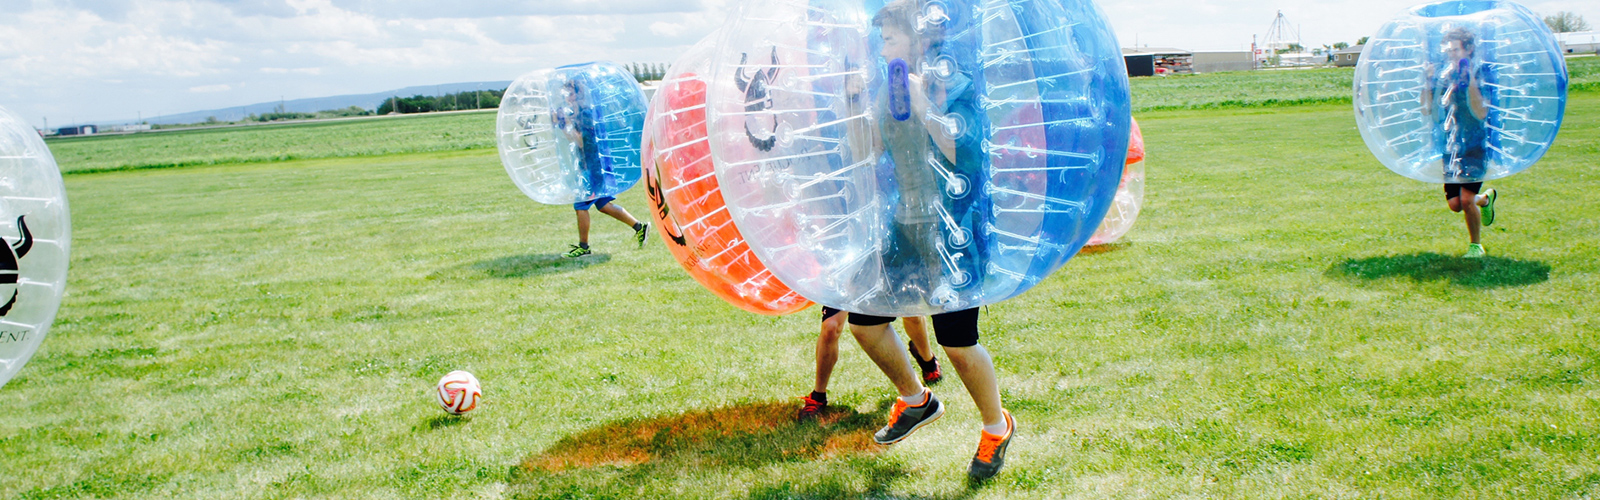 Concierge Belgrade | Bubble Football Experience